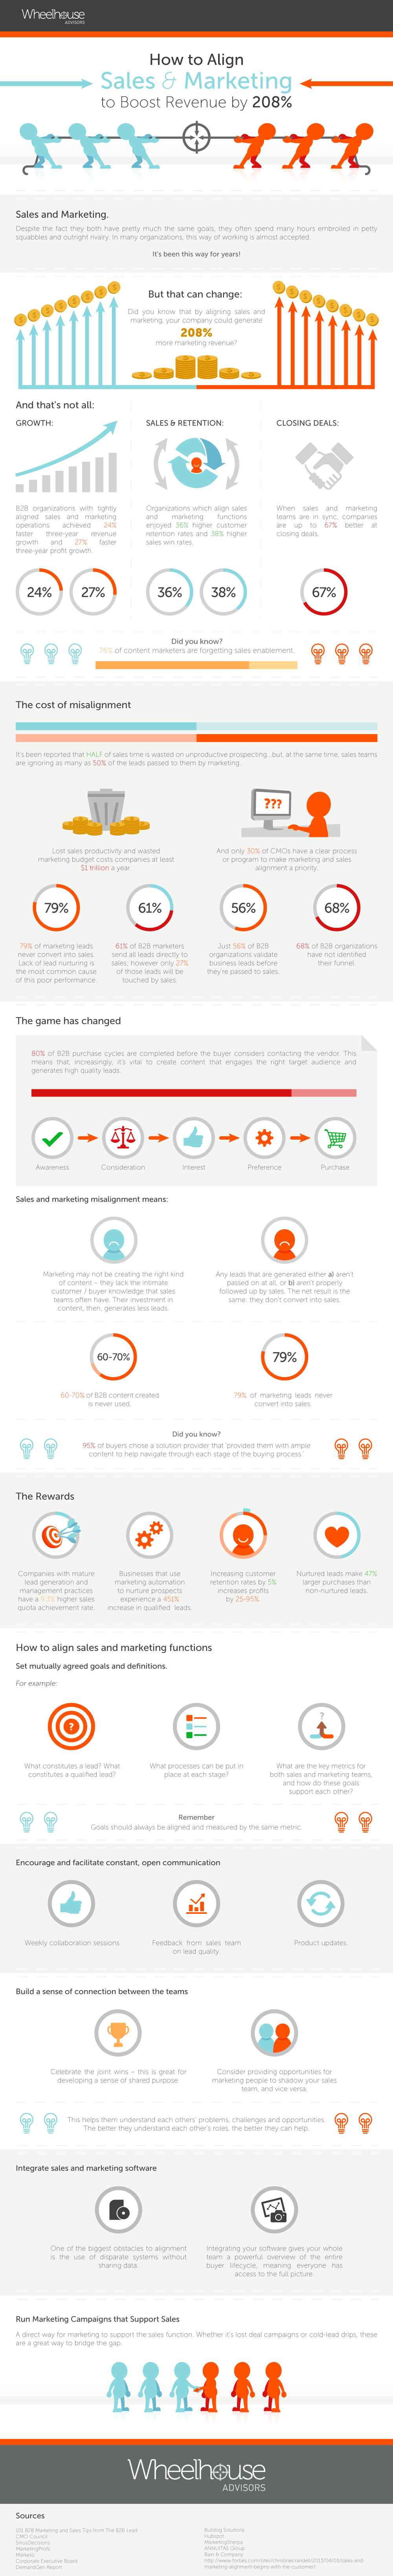 Meeting Agenda Template How To Align Sales And Marketing Boost Revenue By 208 Infographic